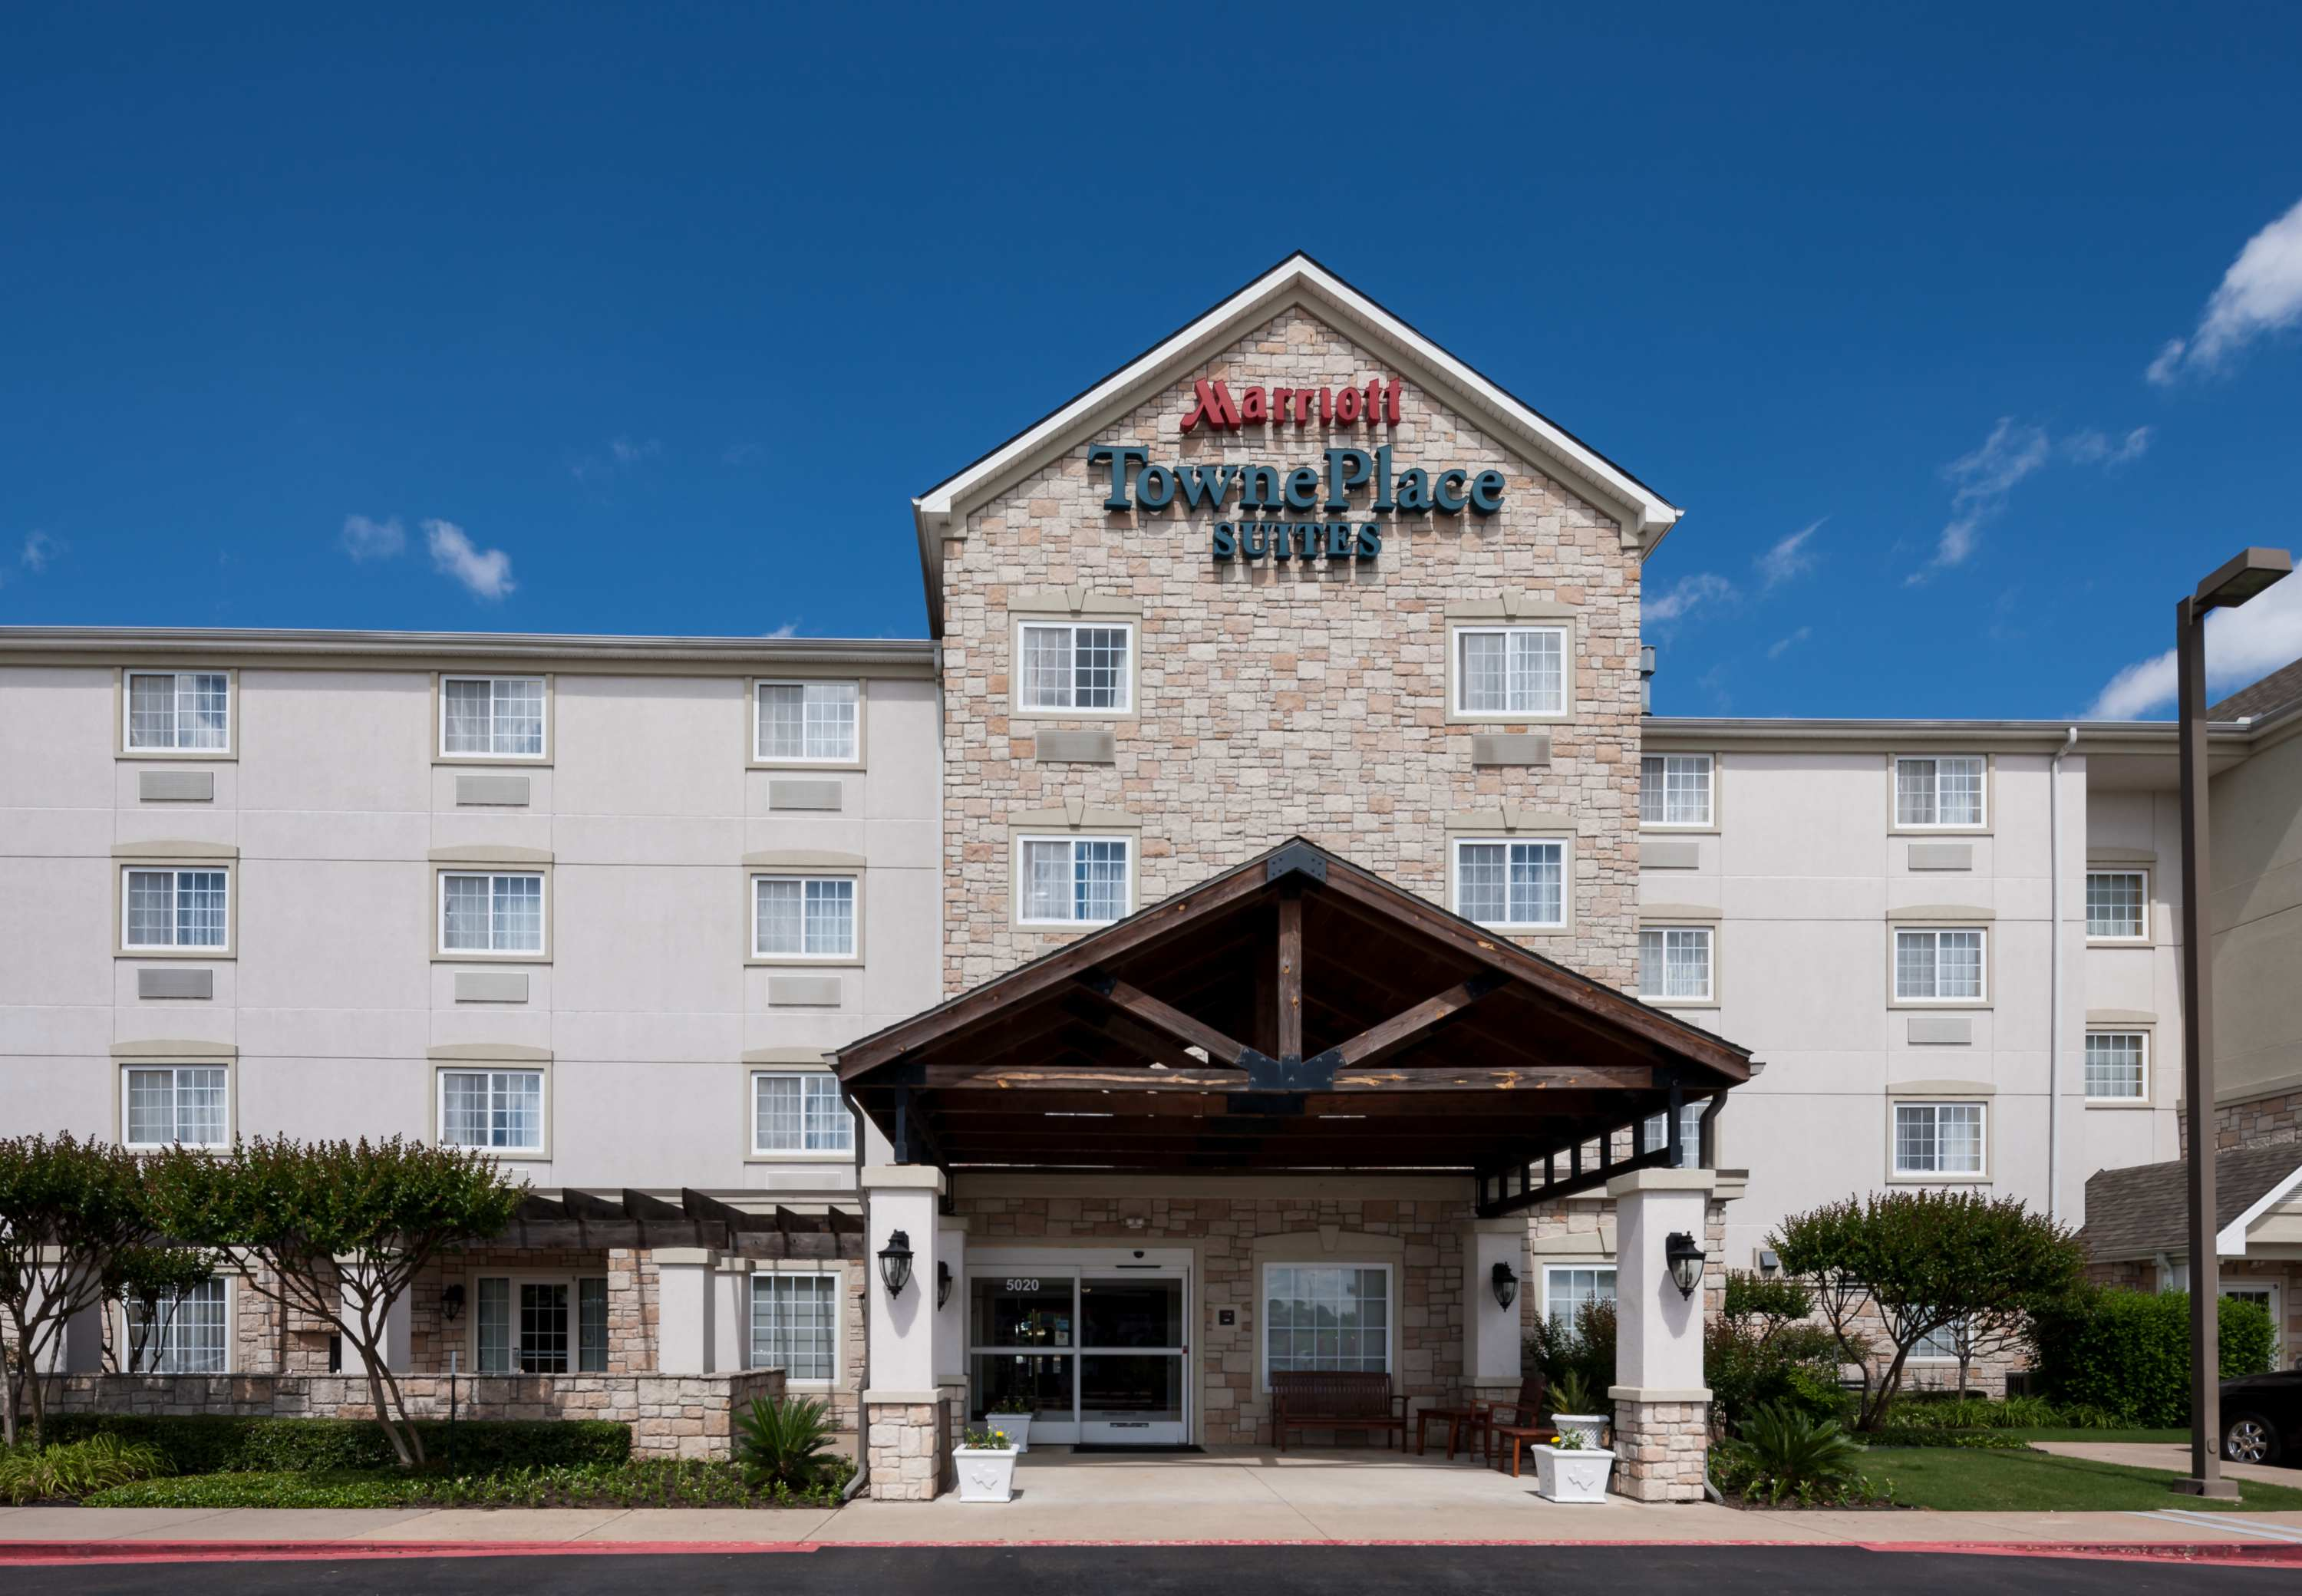 TownePlace Suites by Marriott Texarkana image 10